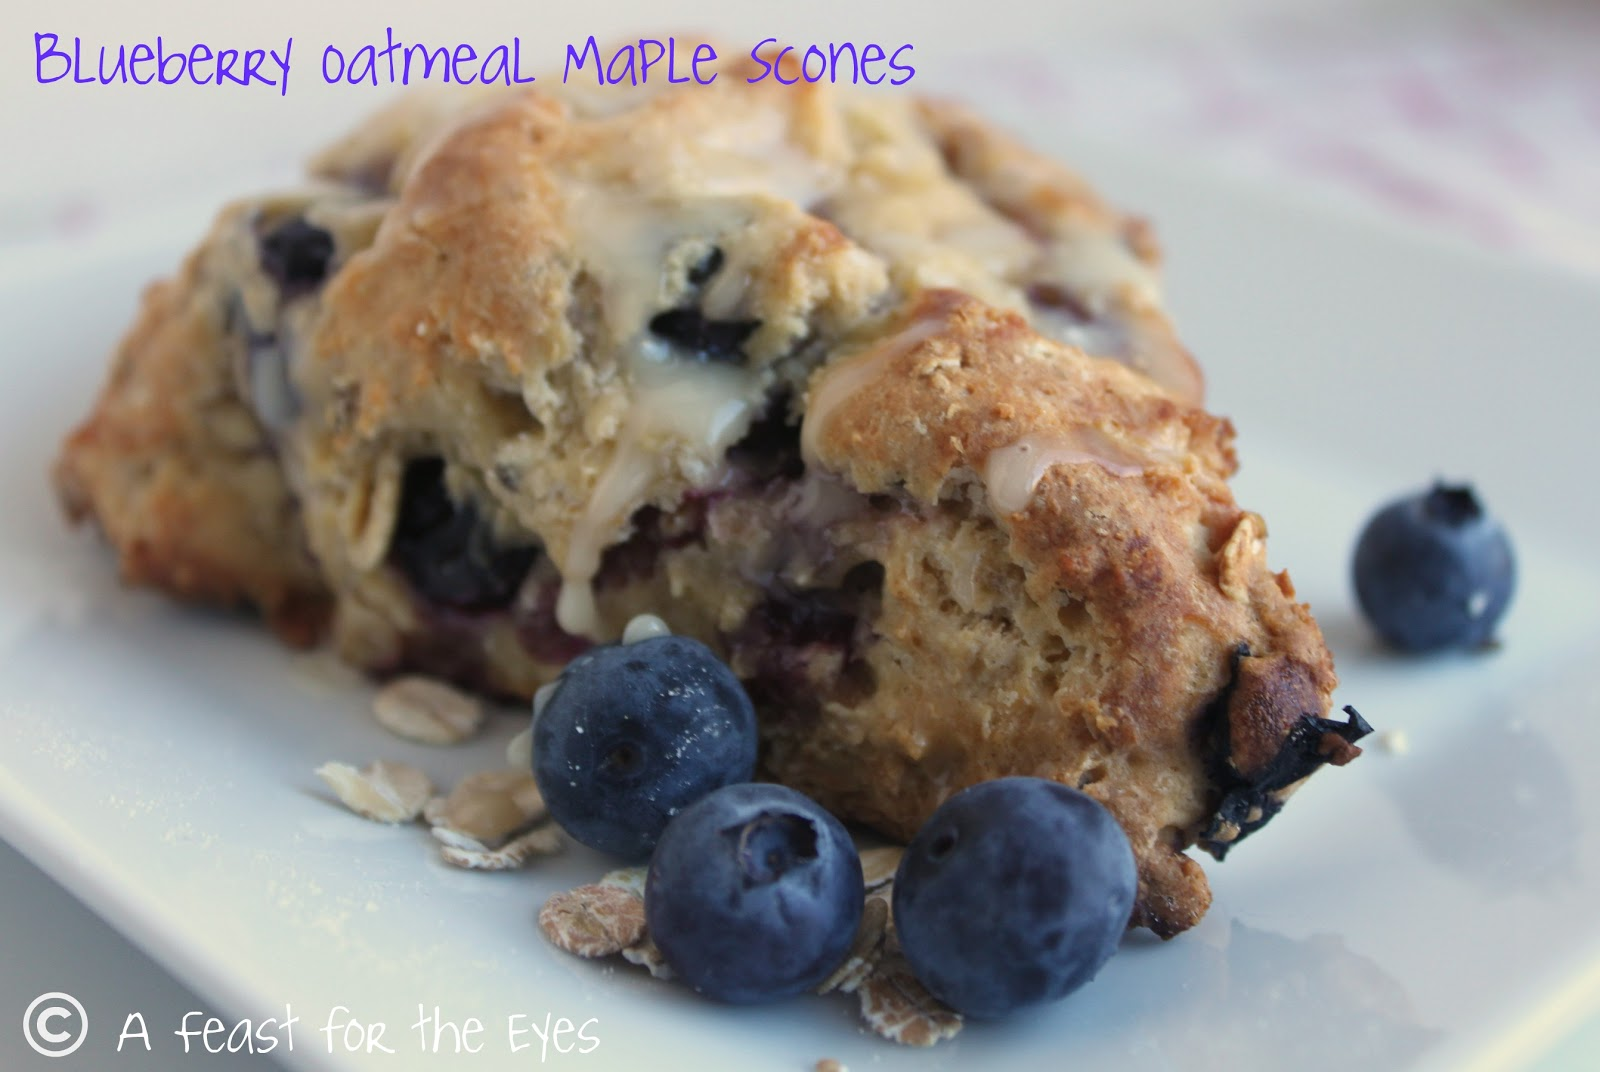 A Feast for the Eyes: Blueberry Oatmeal Maple Scones ...